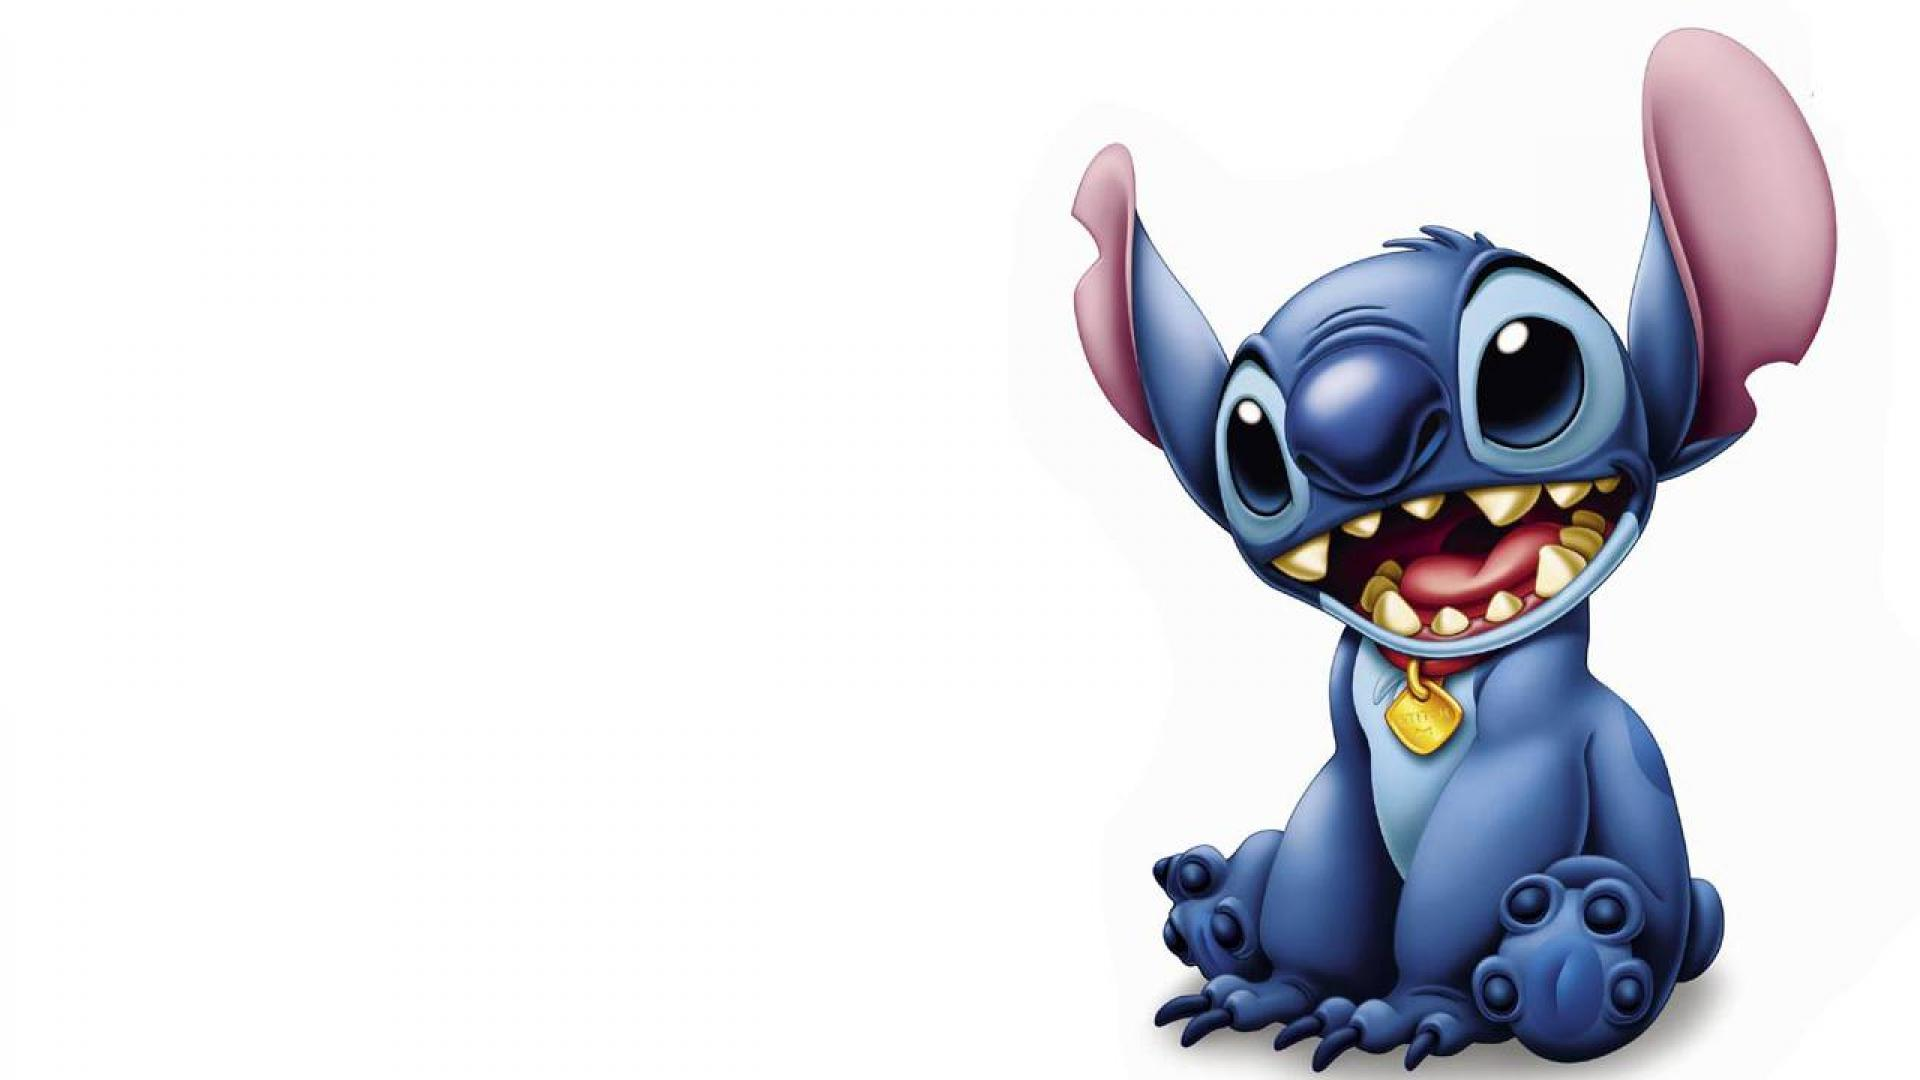 stitch hd wallpaper - photo #4